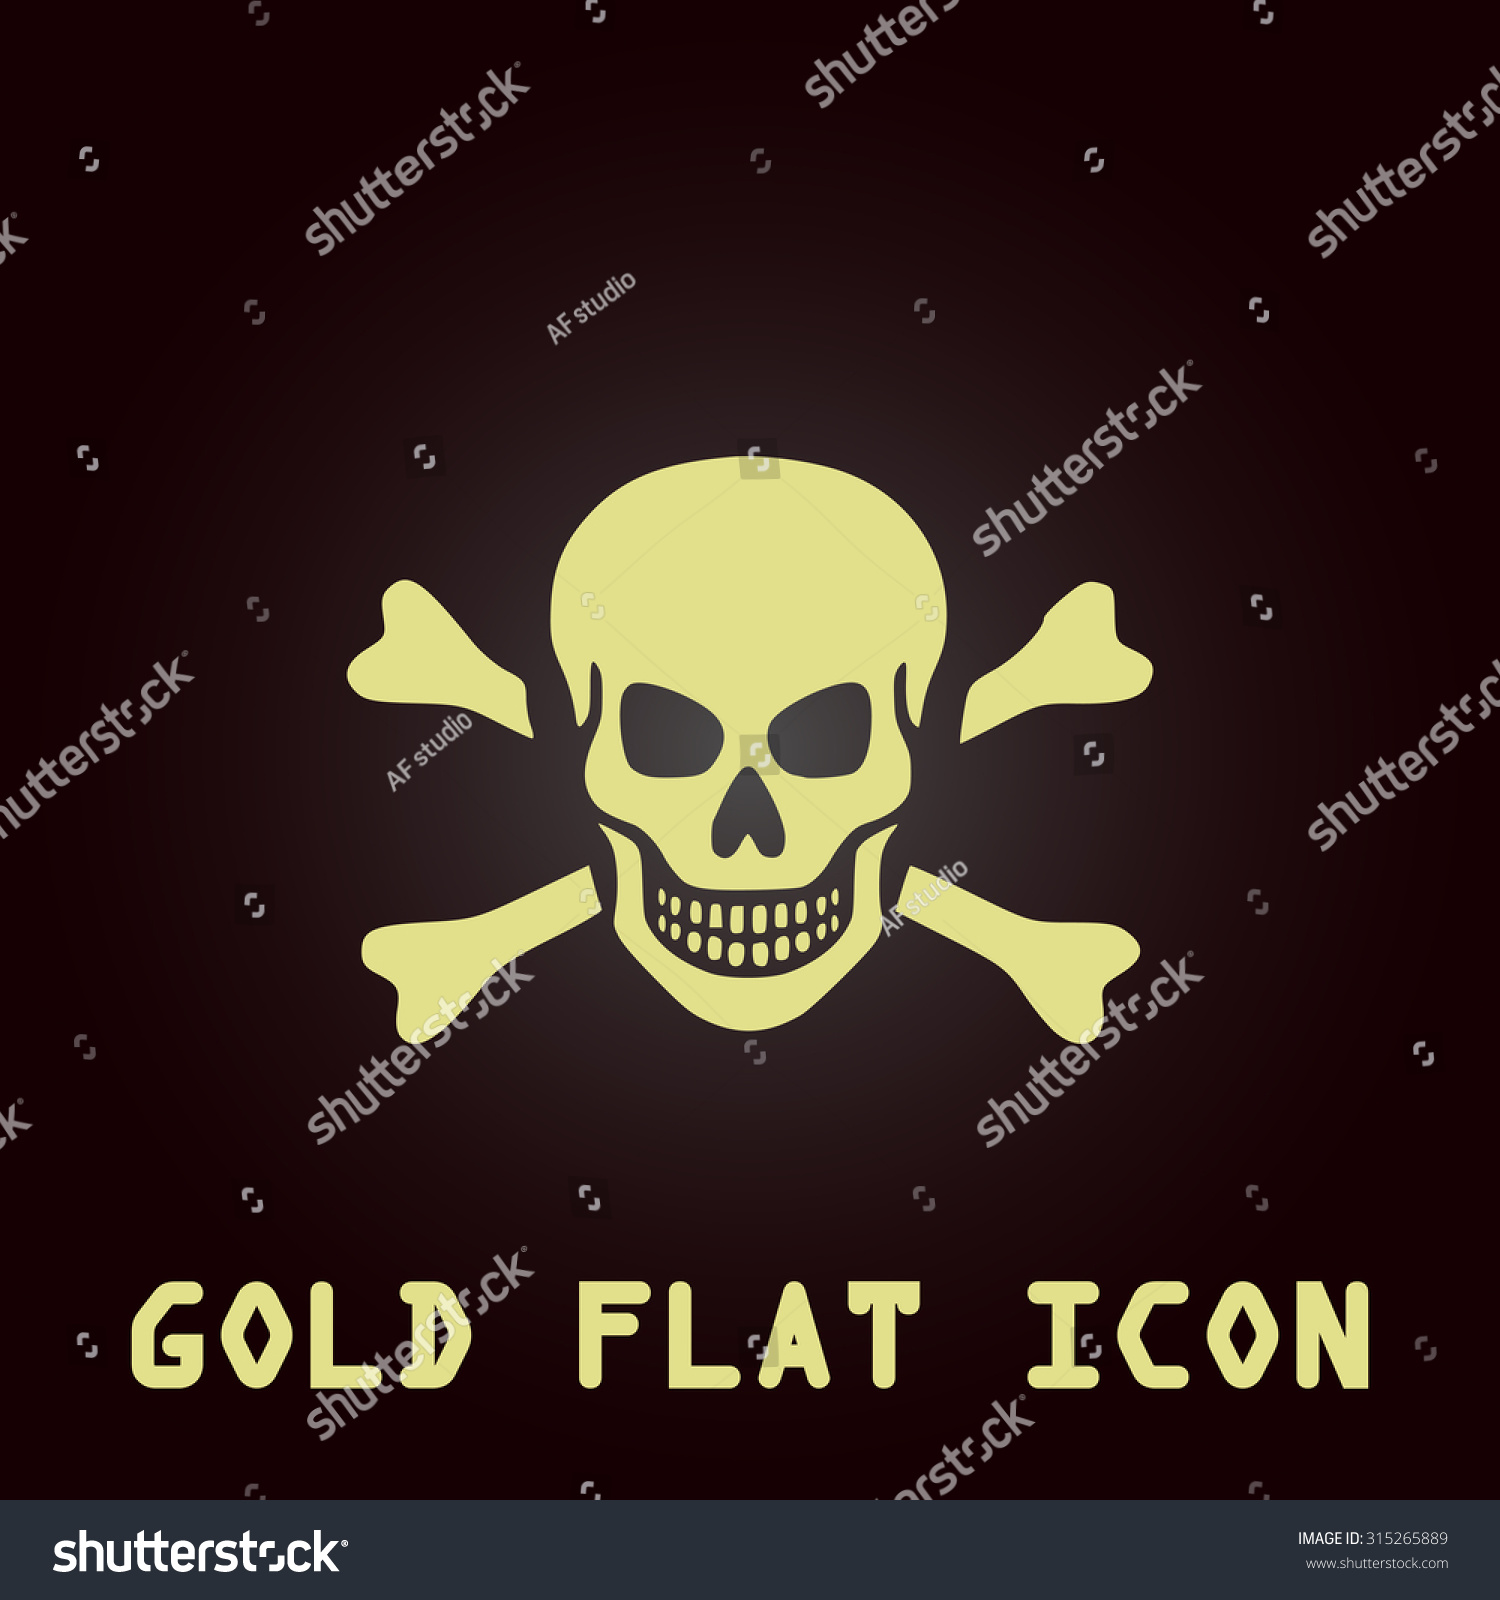 Skull crossbones gold flat icon symbol stock illustration skull and crossbones gold flat icon symbol for web and mobile applications for use buycottarizona Images